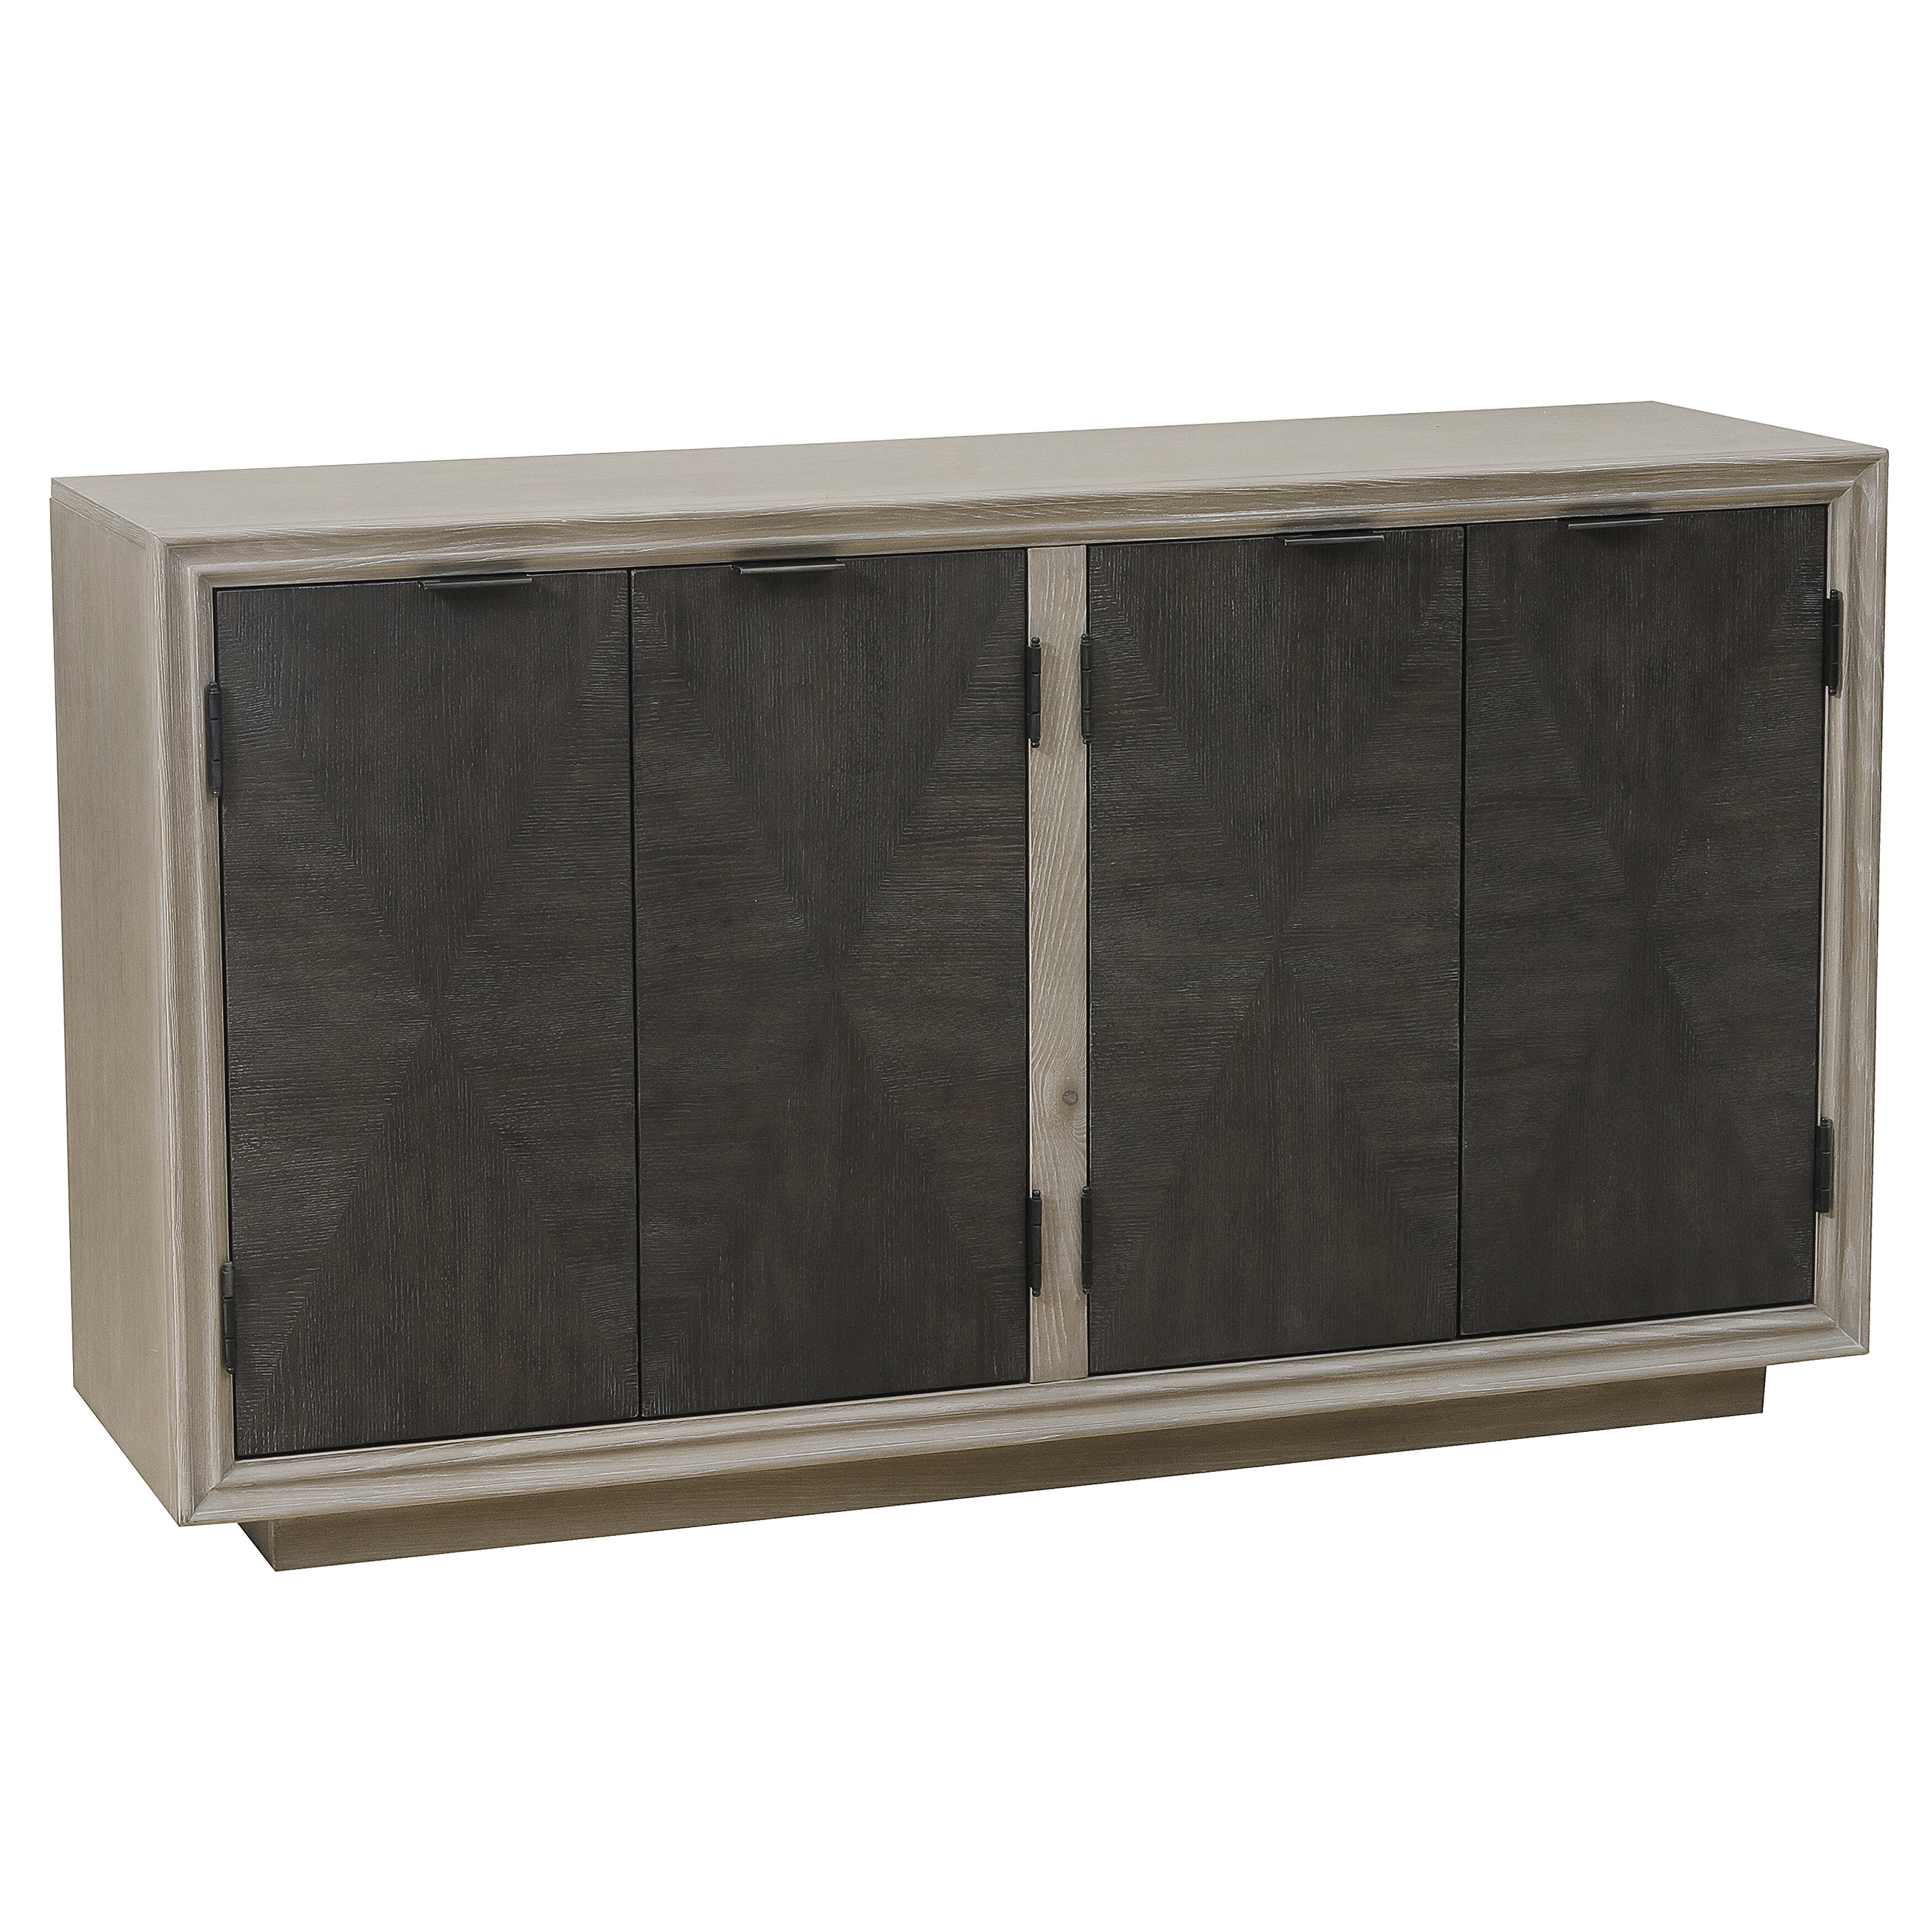 Massillon Sideboards Pertaining To Latest Hoover Four Door Duotone Parquet Sideboard (Gallery 8 of 20)